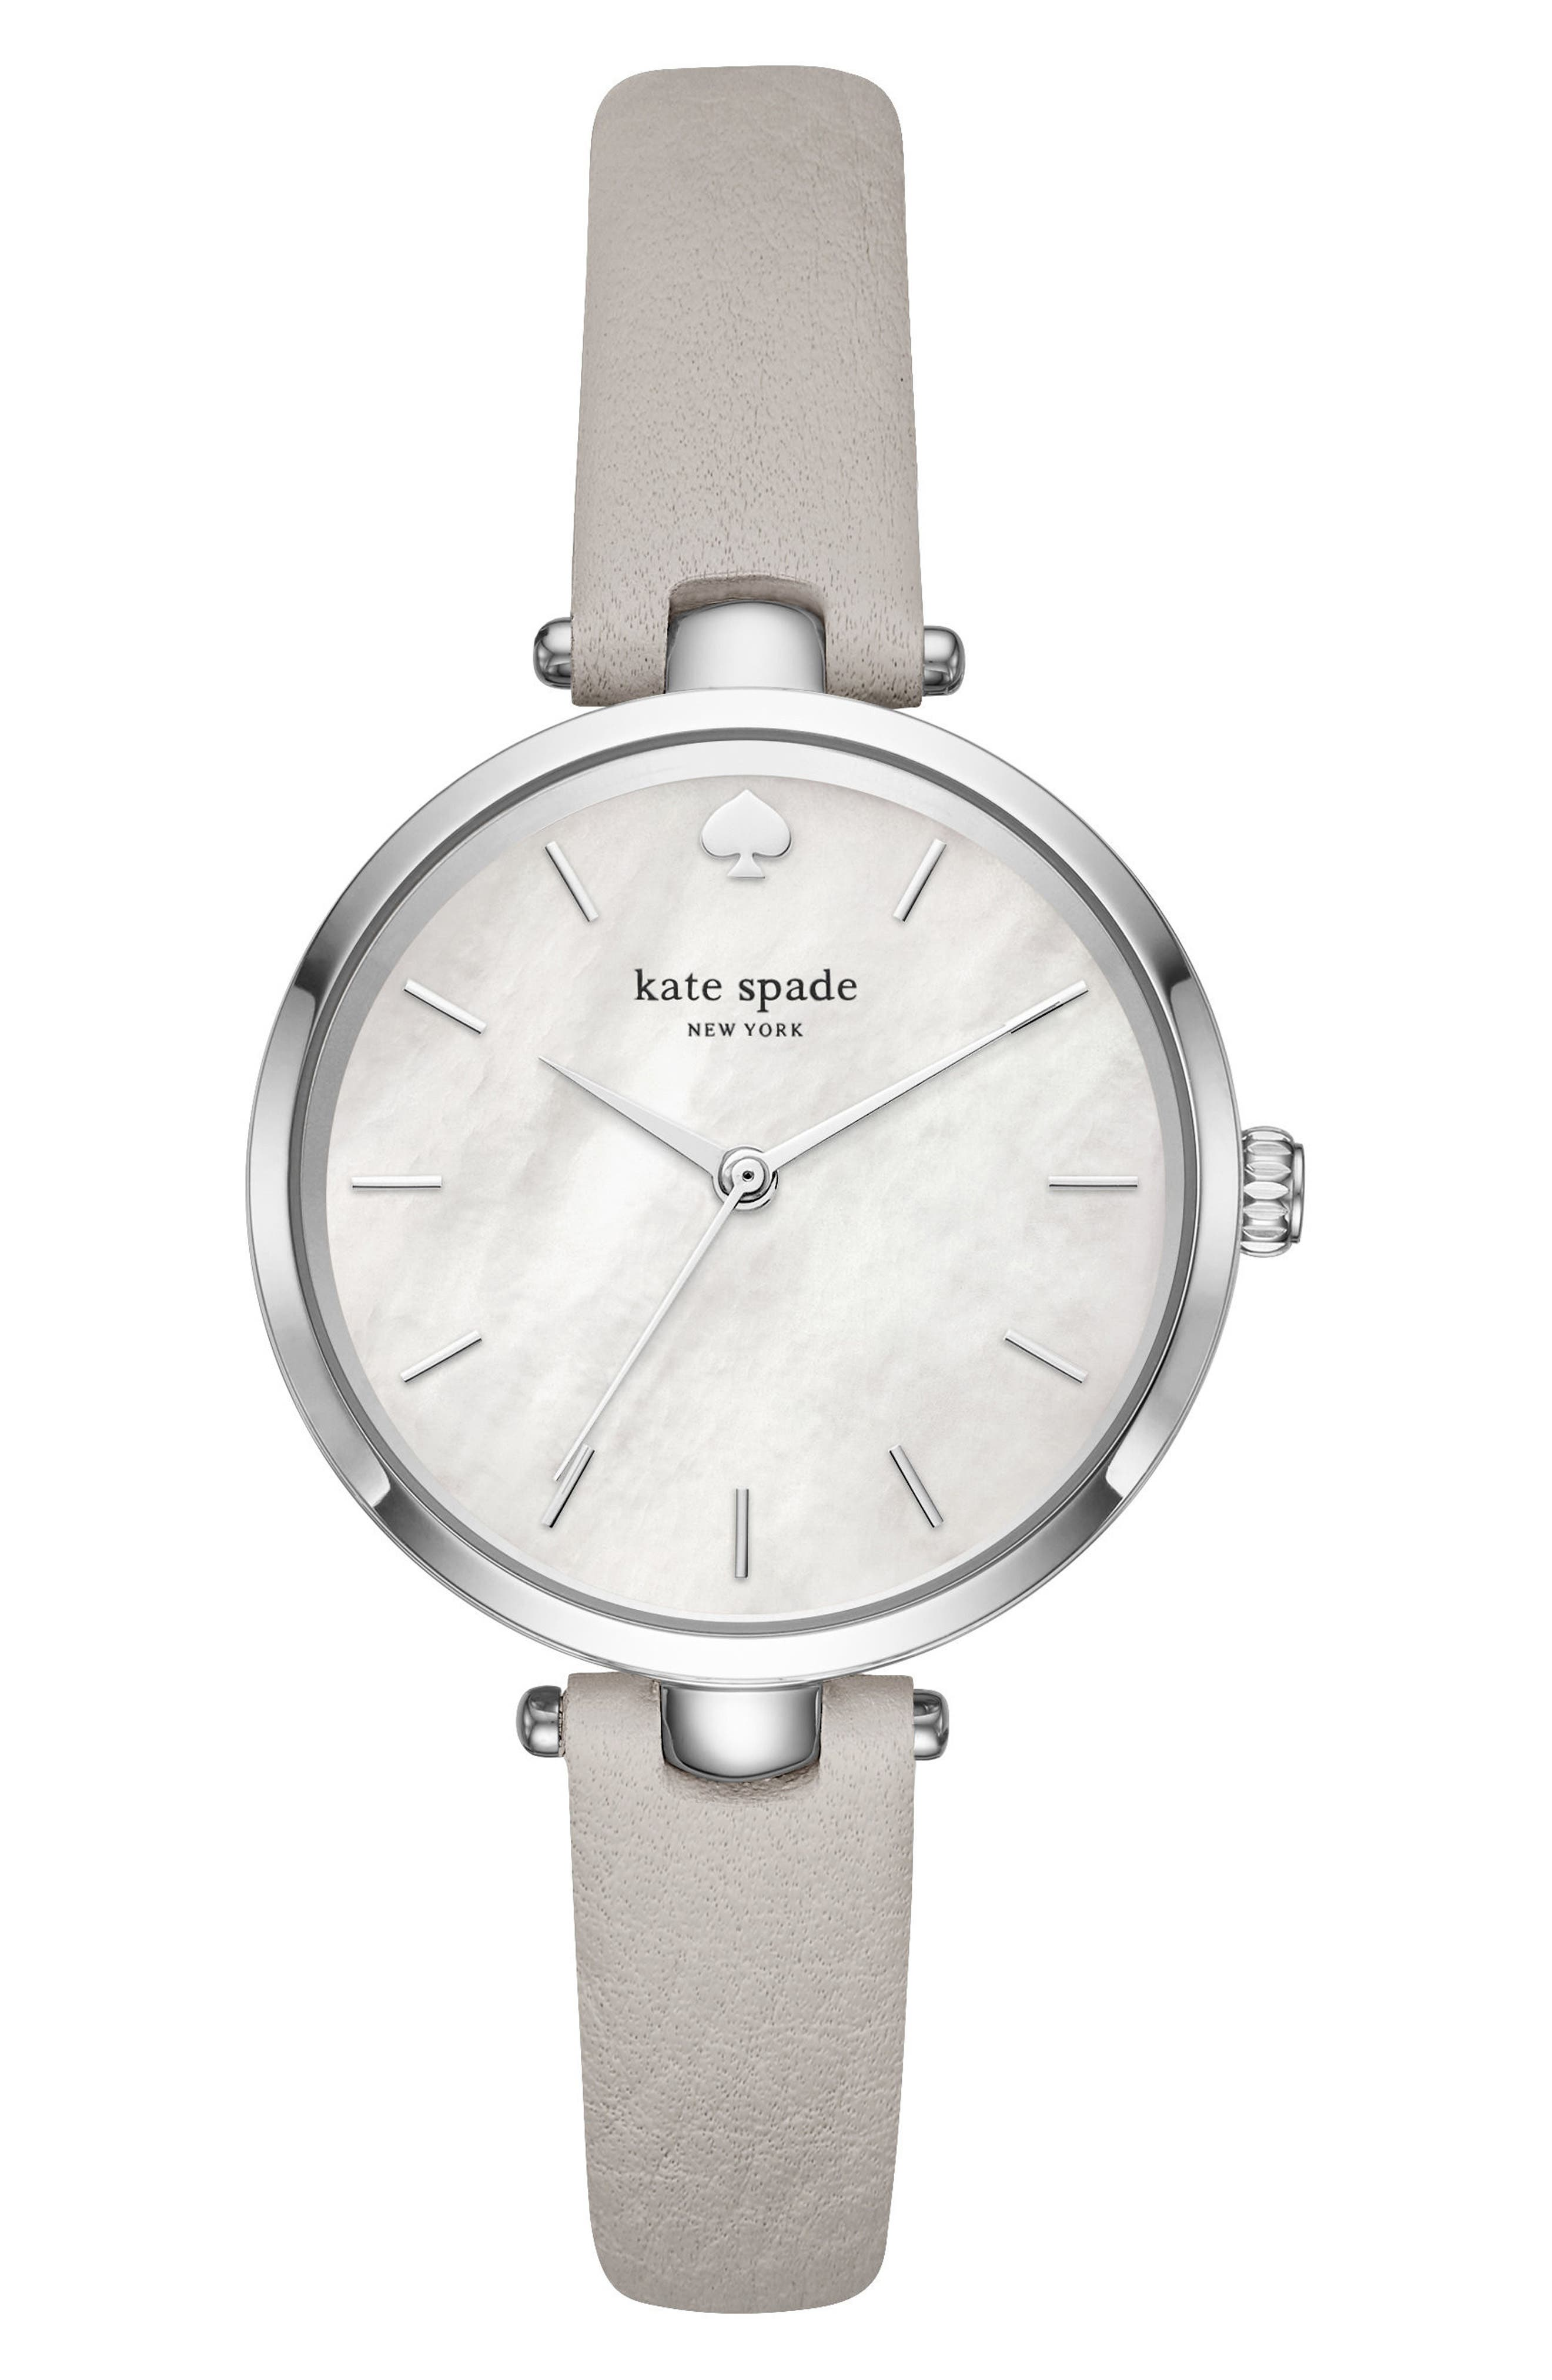 Main Image - kate spade new york holland leather strap watch gift set, 34mm